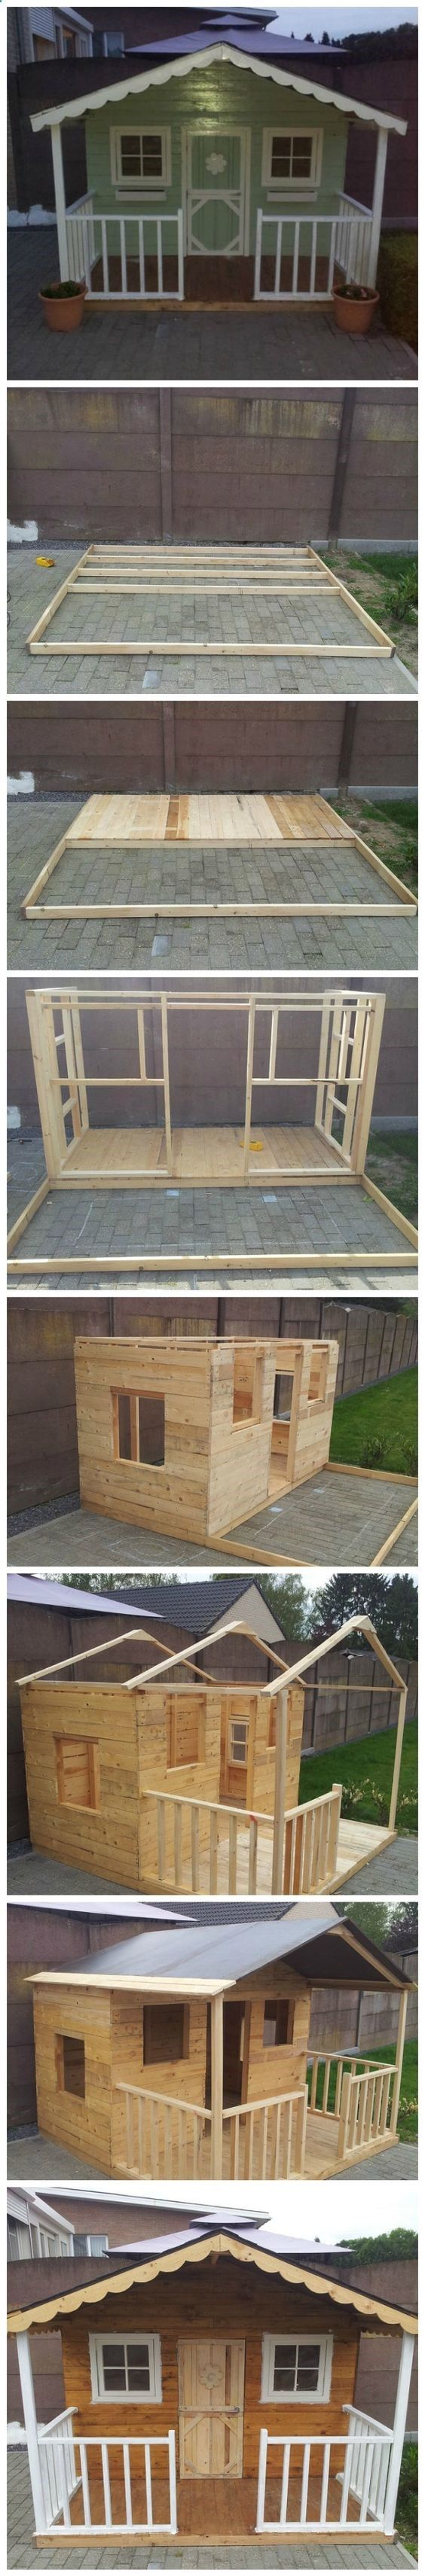 Shed Plans - Good how to for possible shed, just build to a little larger scale...DIY Pallets Playhouse - Now You Can Build ANY Shed In A Weekend Even If You've Zero Woodworking Experience!